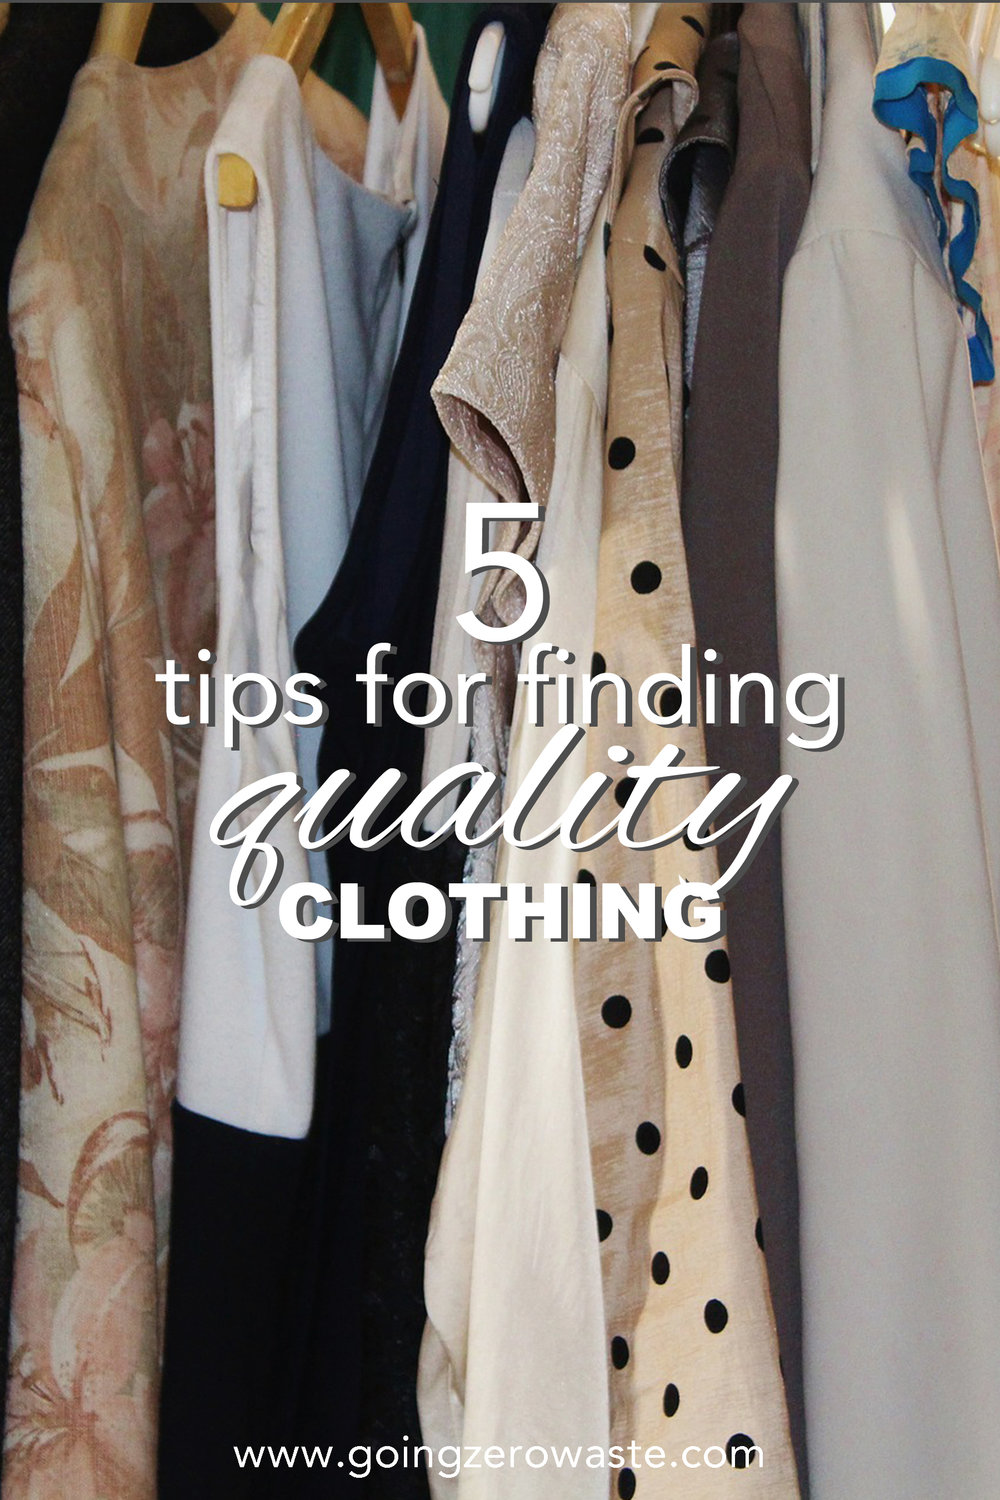 5 tips for finding quality clothing even second hand from www.goingzerowaste.com